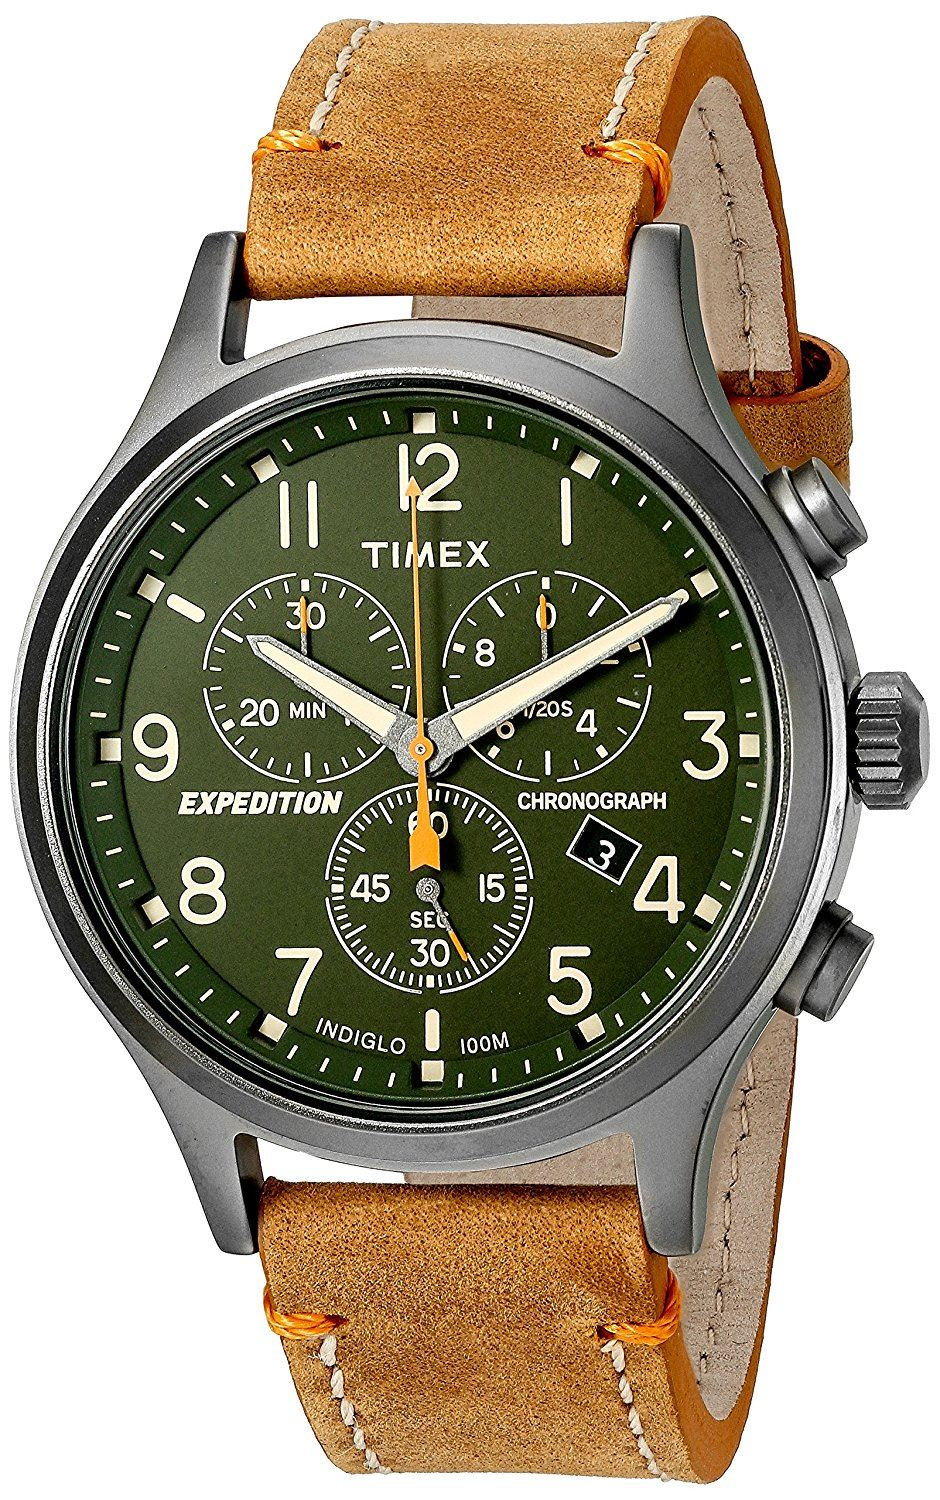 80367b8b5235 Reloj Timex - Hombre Expedition Scout